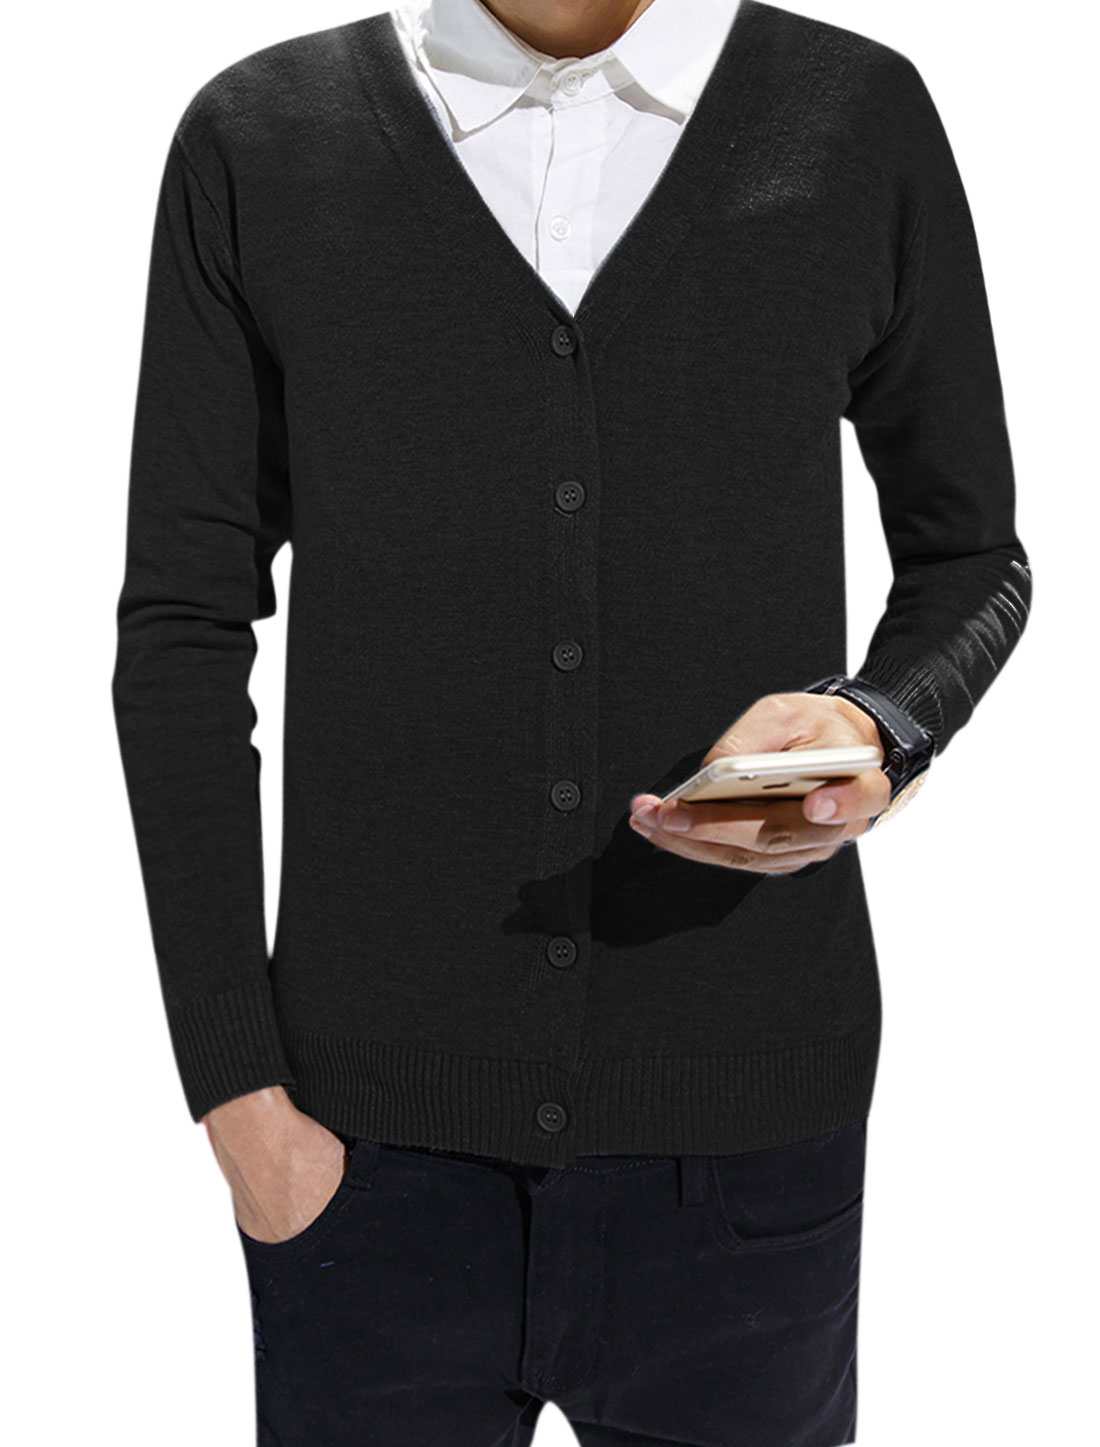 Men Knitted Long-sleeved Single Breasted Slim Fit Cardigan Black S